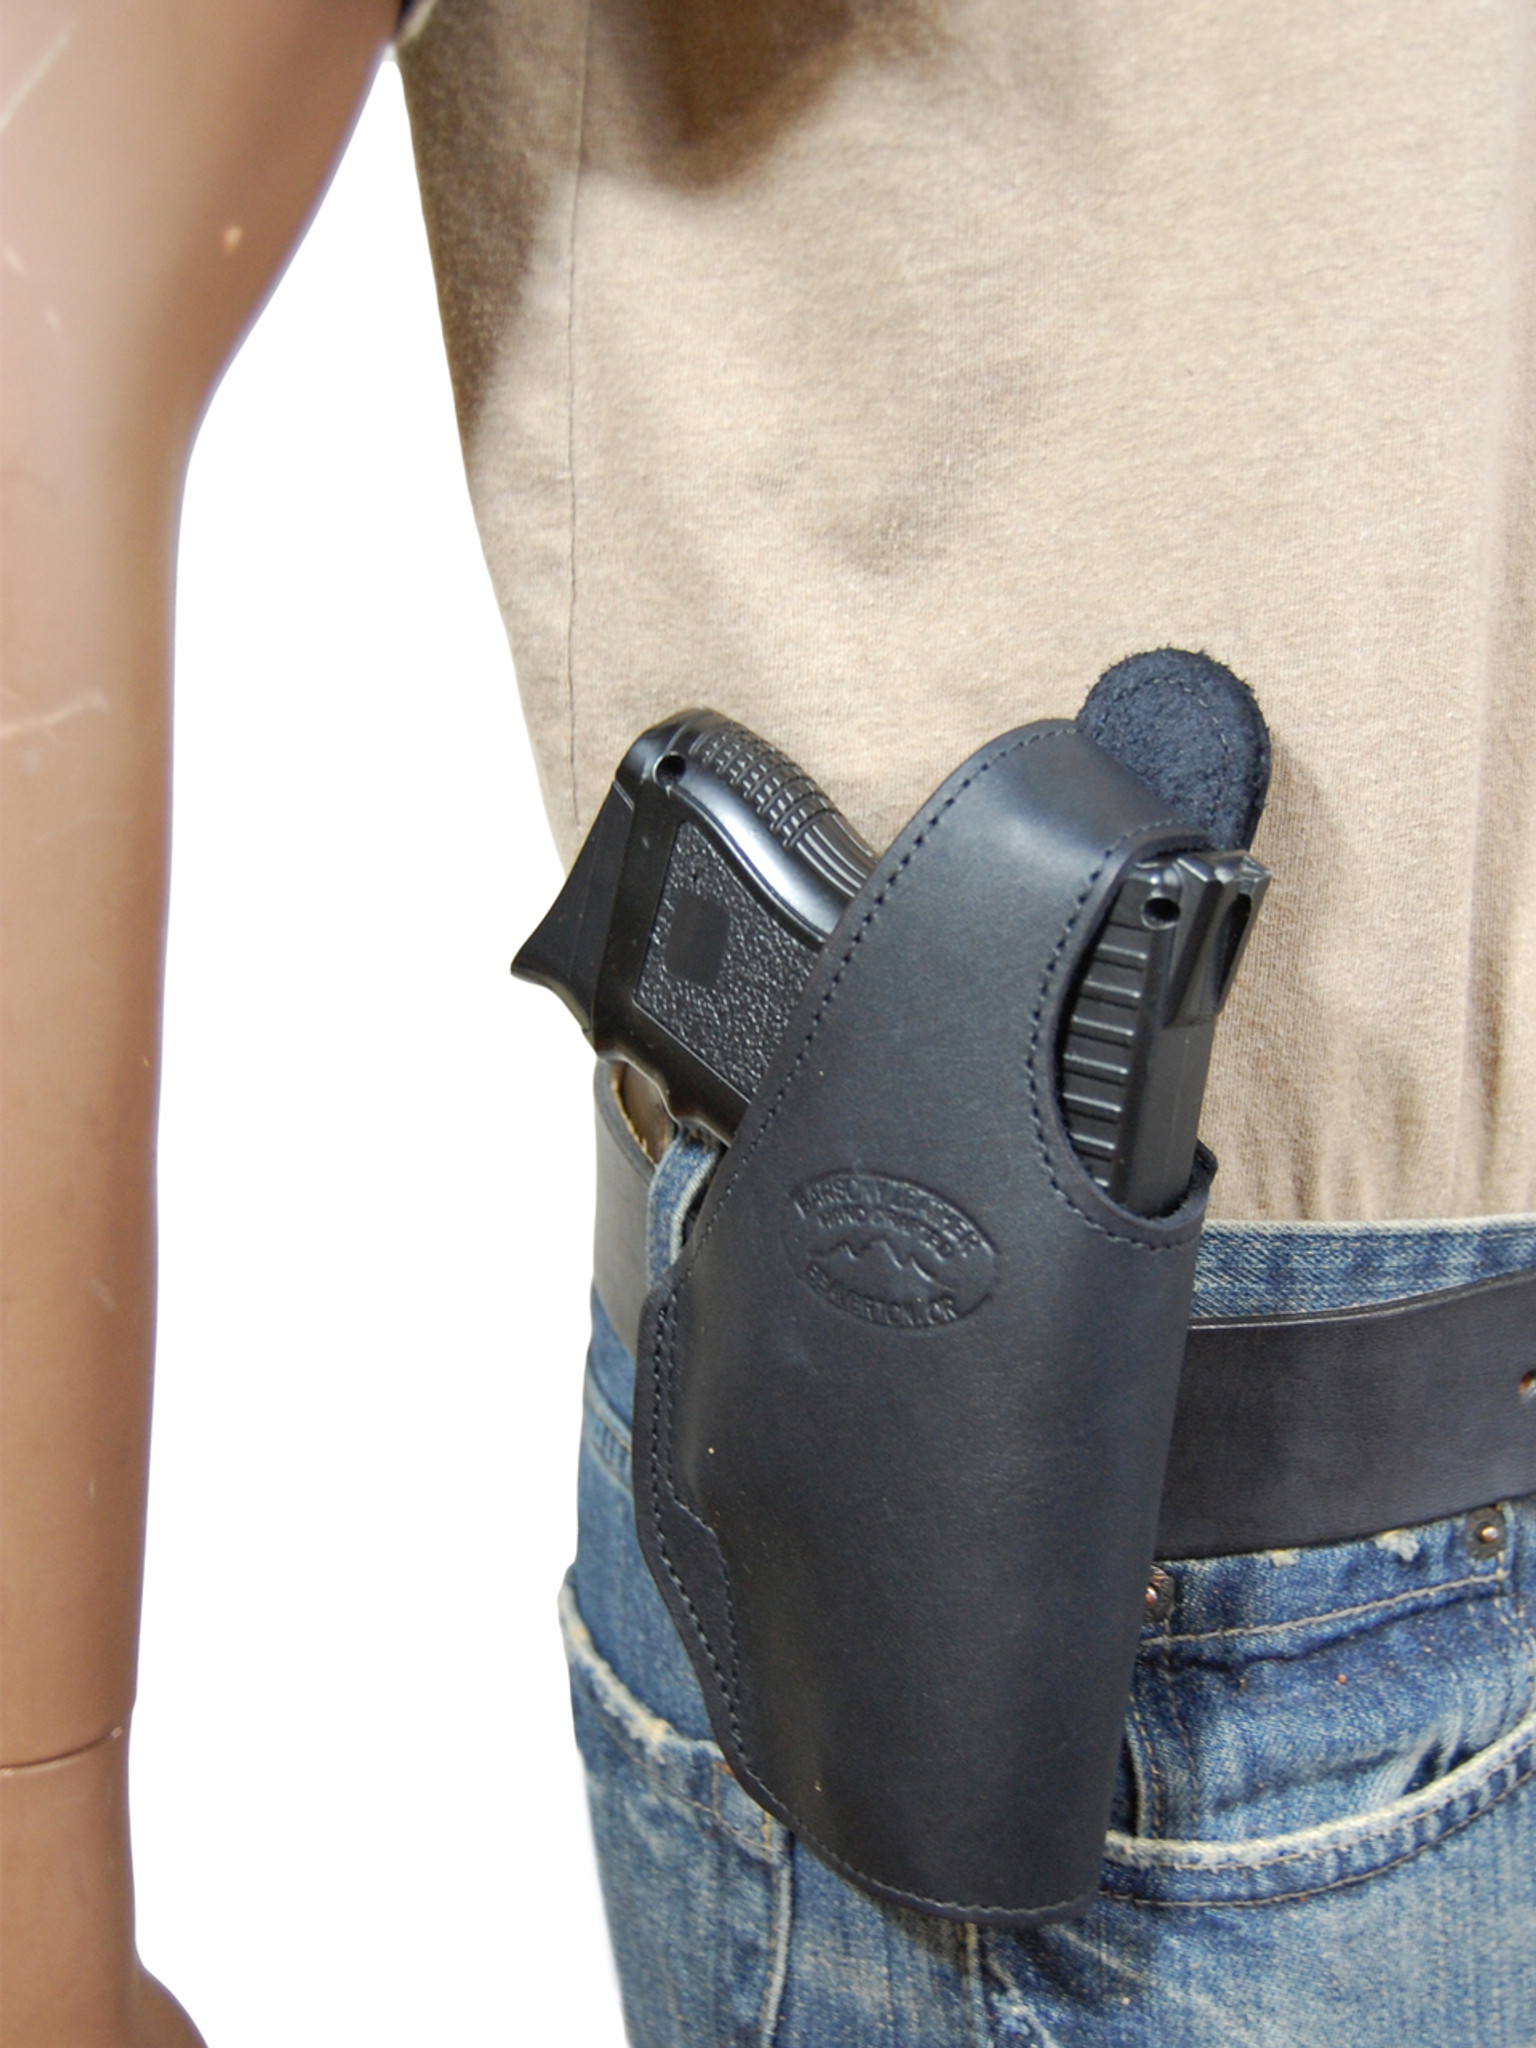 Black Leather OWB Holster for Compact Sub-Compact 9mm 40 45